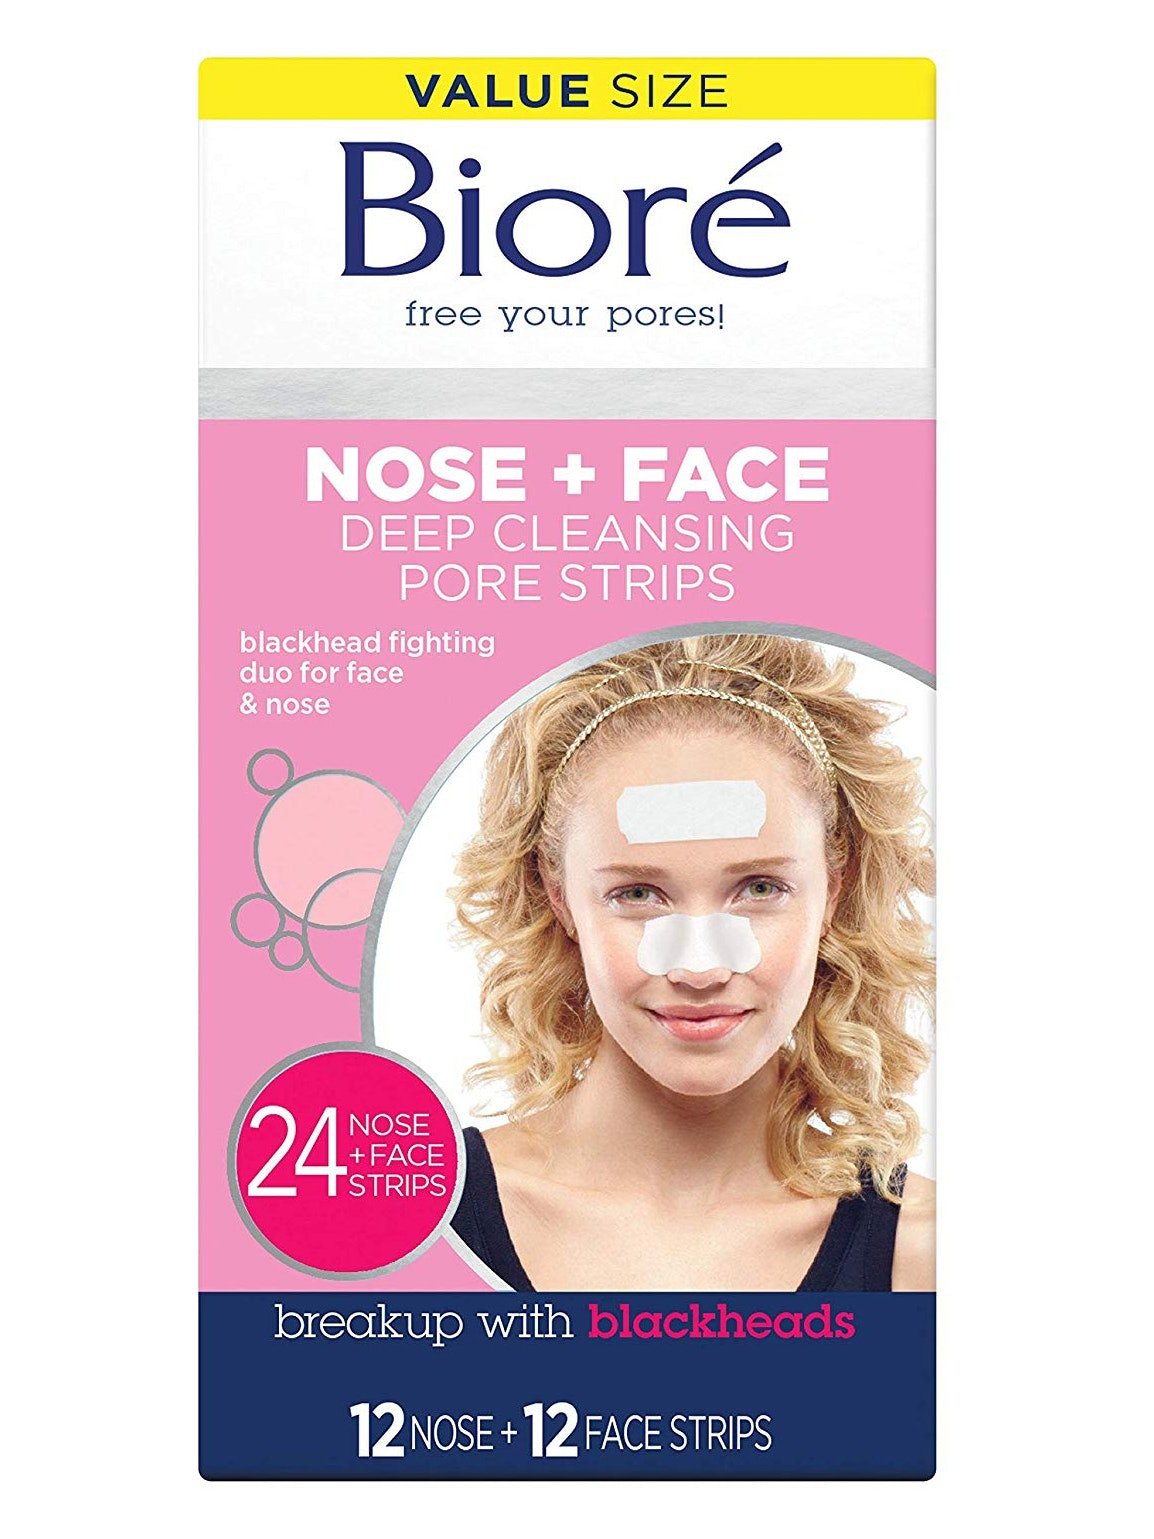 Bioré pore strips